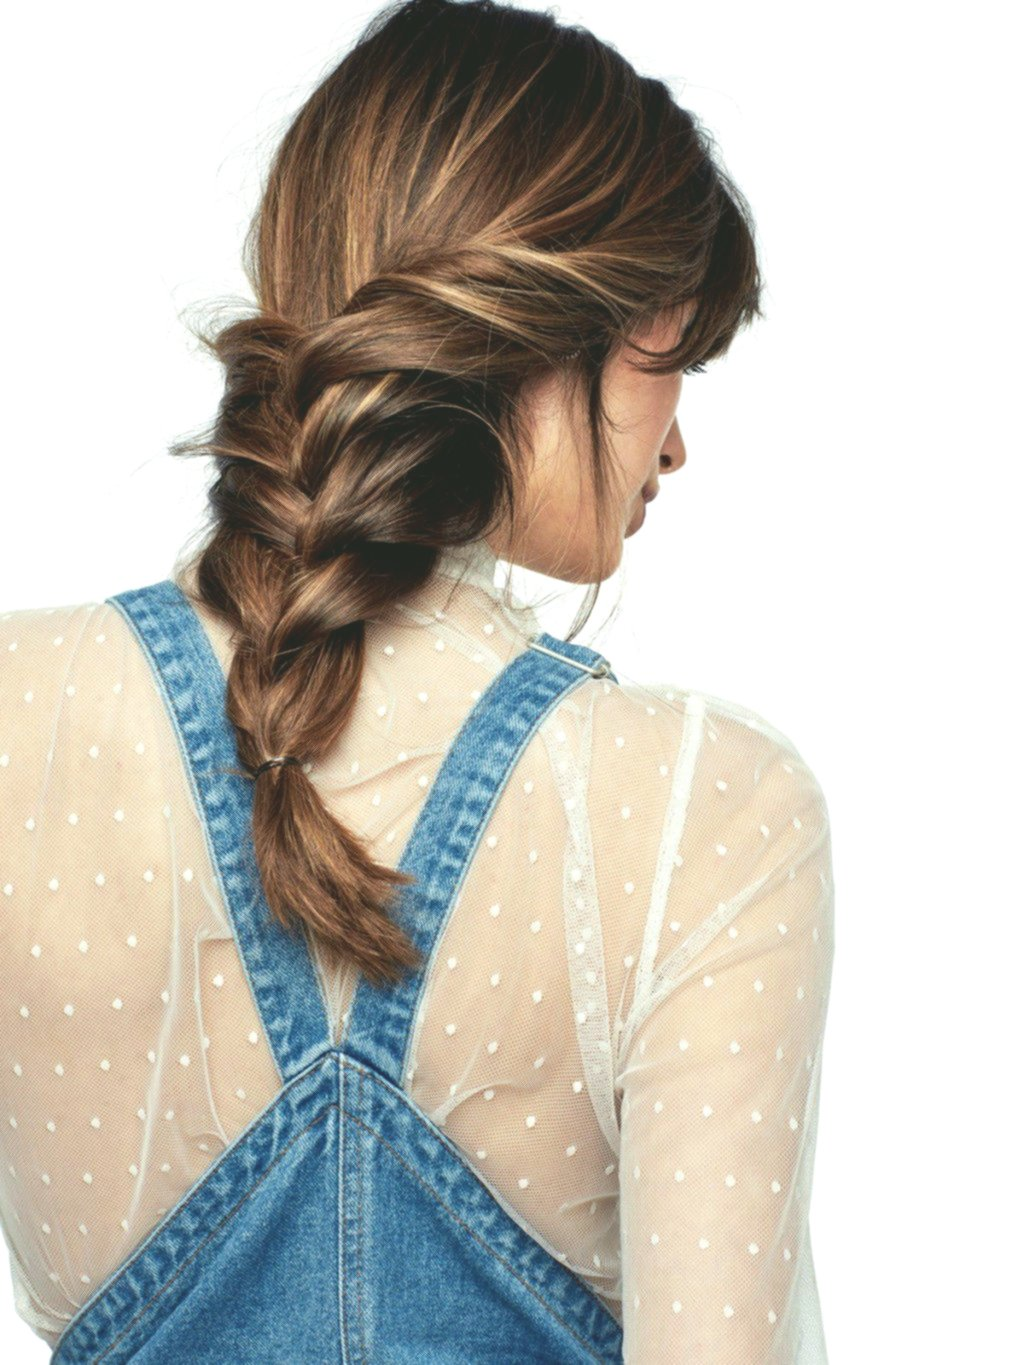 beautiful hairstyles for women portrait-Superb hairstyles for women image